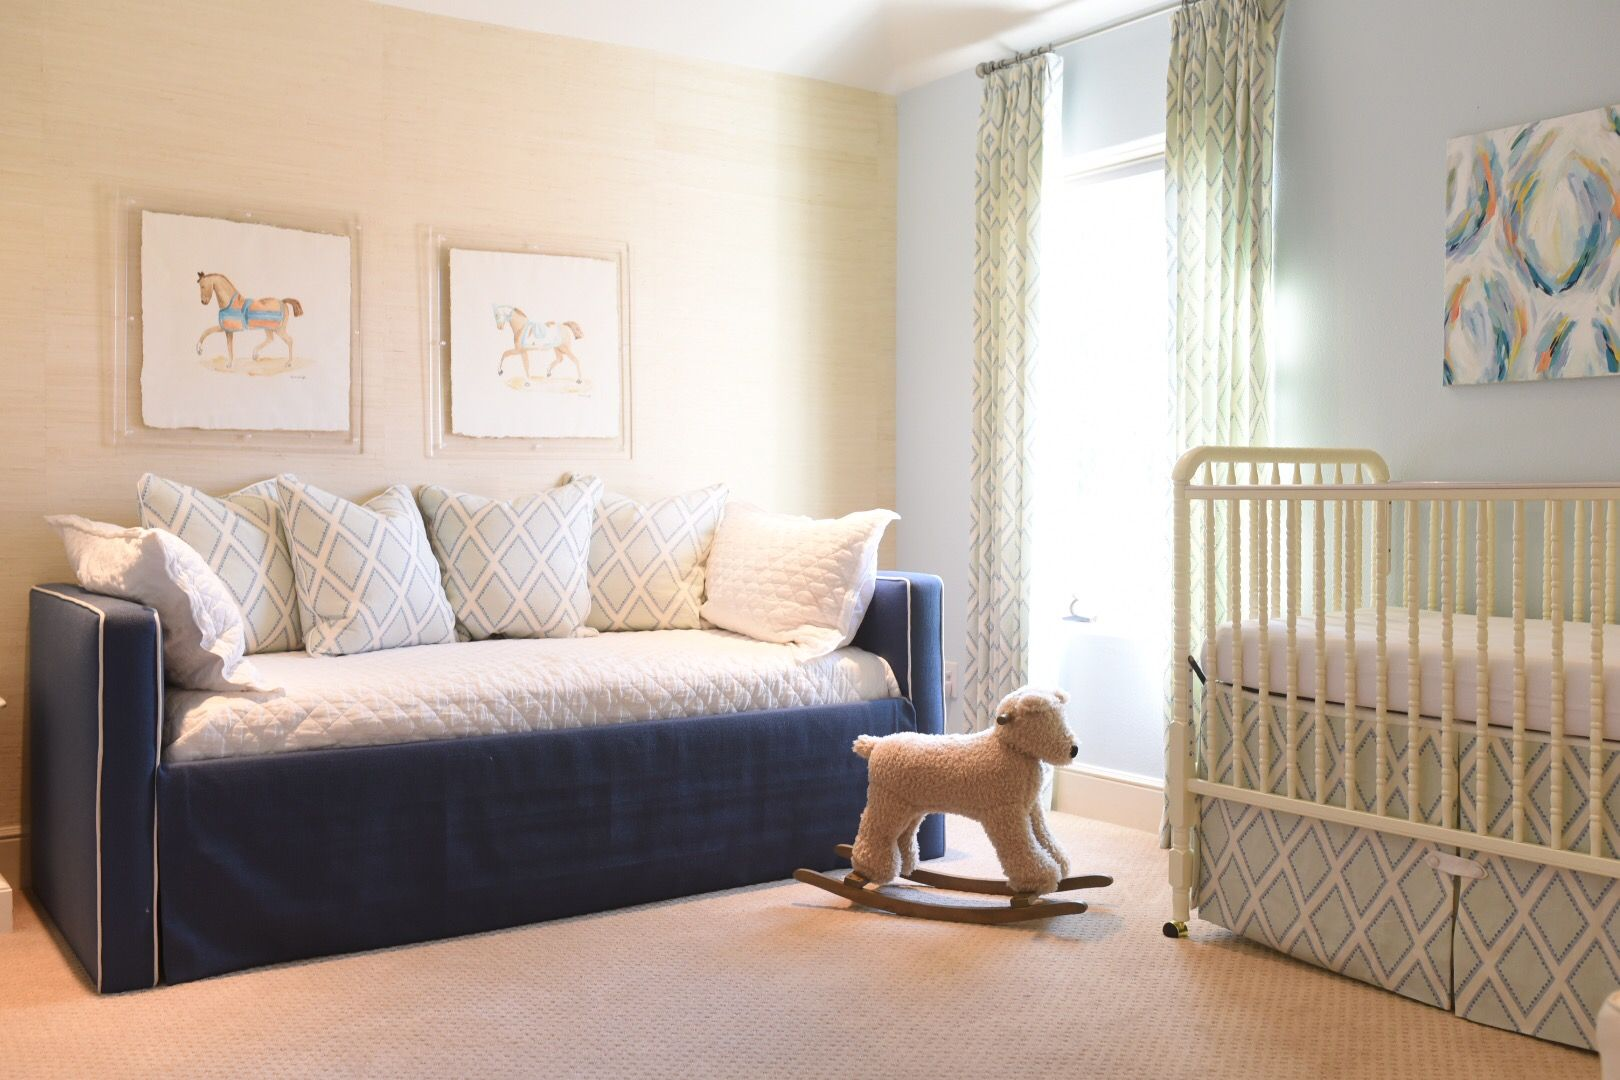 Nursery Daybed In Our Client S Home Nursery Daybed Daybed